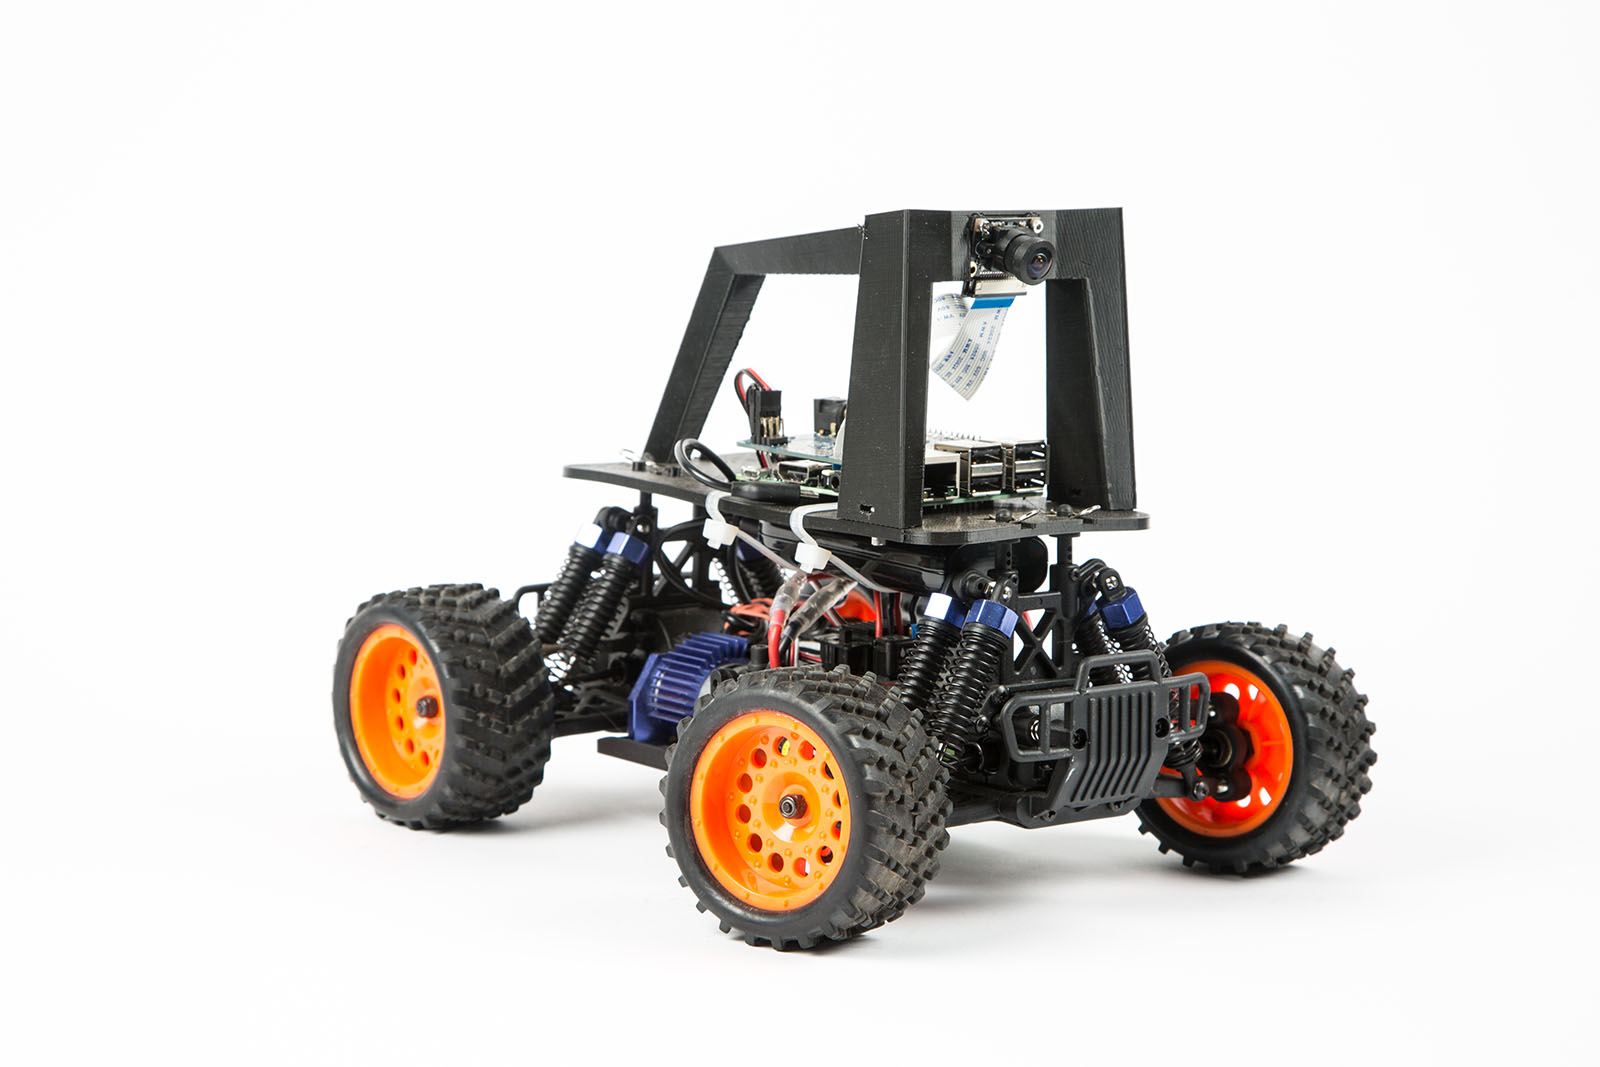 Build An Autonomous R C Car With Raspberry Pi Make Diy Electric Tractor Page 3 Of 4